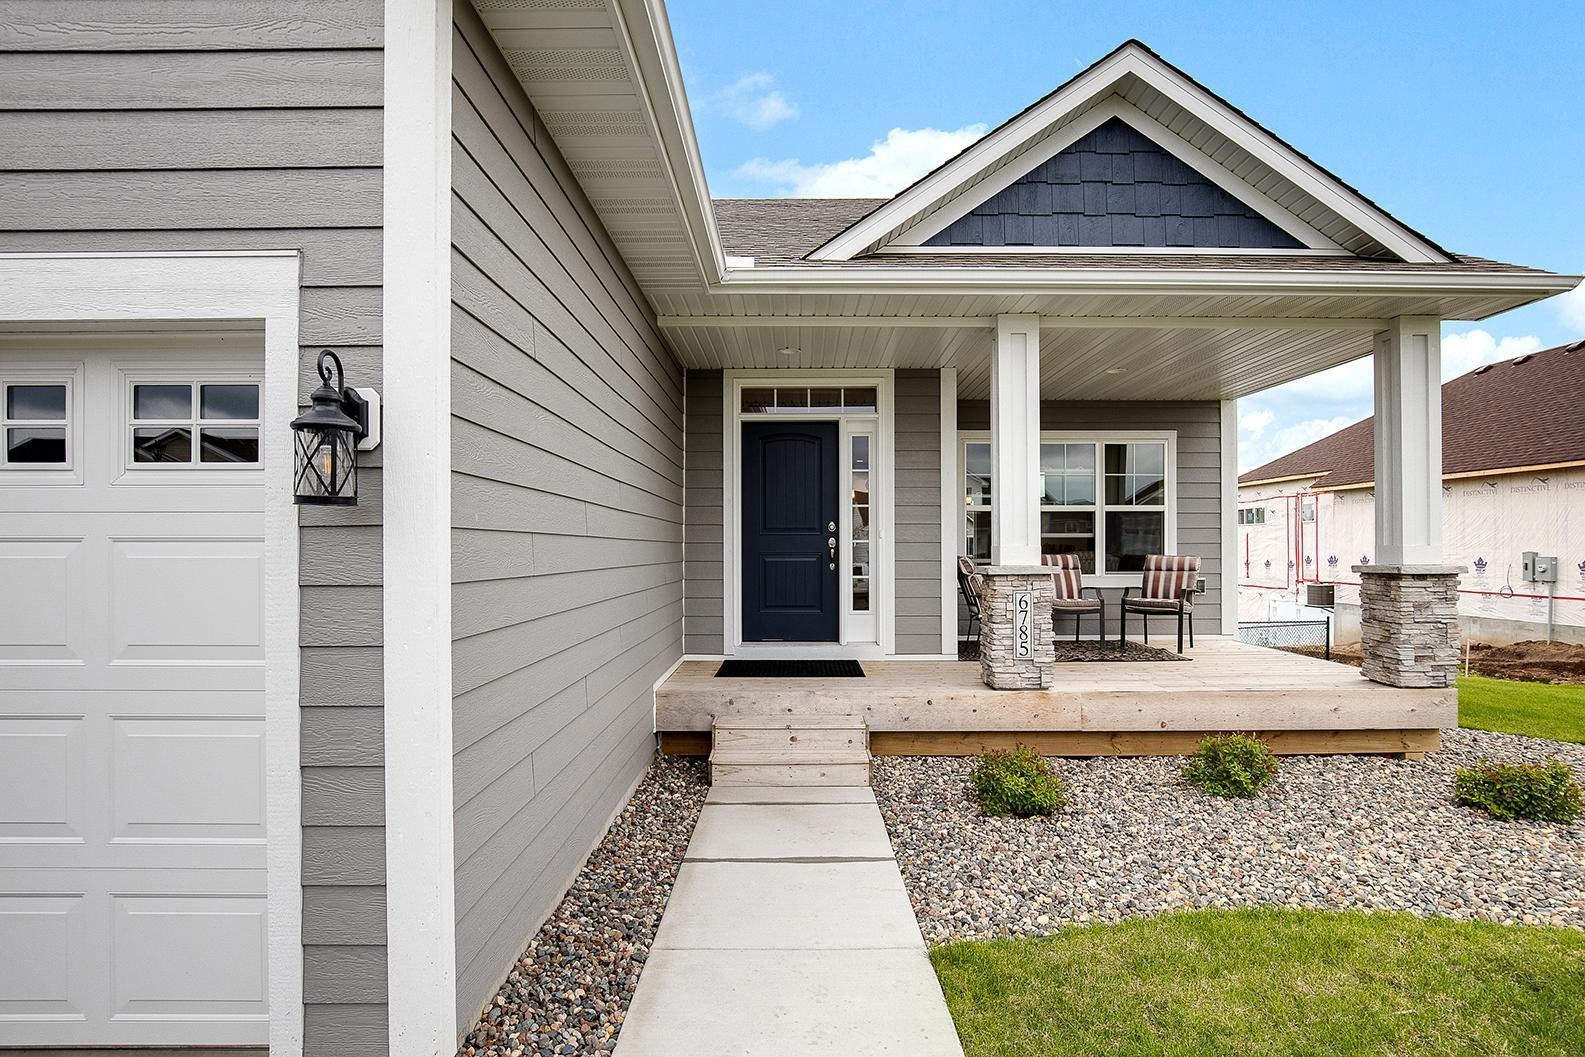 6785 93rd Bay S, Cottage Grove MN 55016 - Photo 2